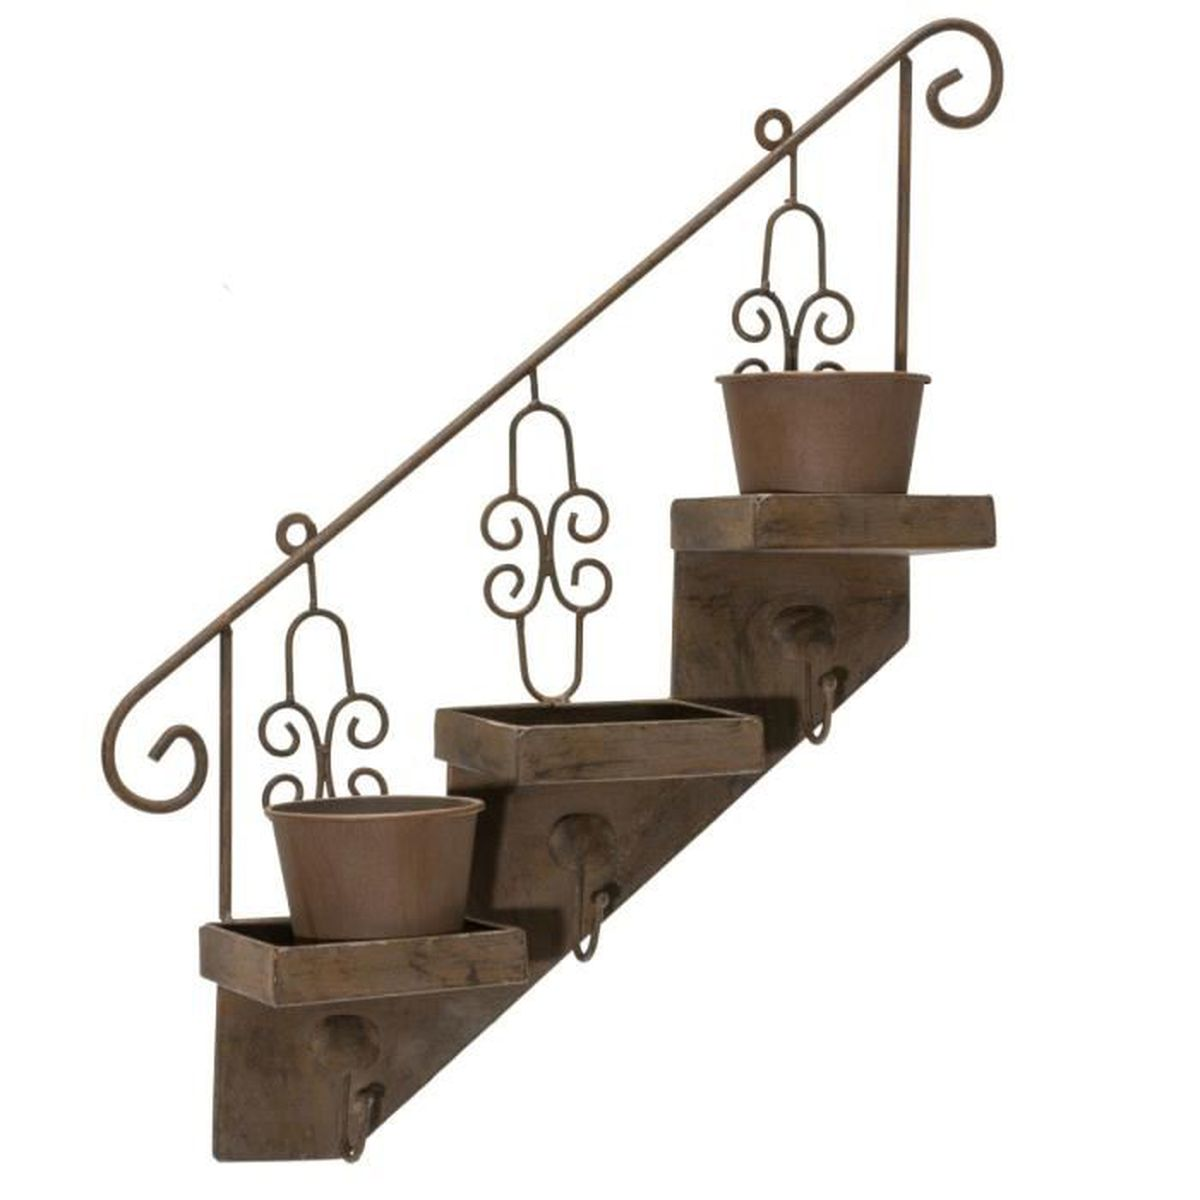 pureday support pour pot de fleurs mural en forme d 39 escalier avec 3 pots m tal aspect ancien. Black Bedroom Furniture Sets. Home Design Ideas